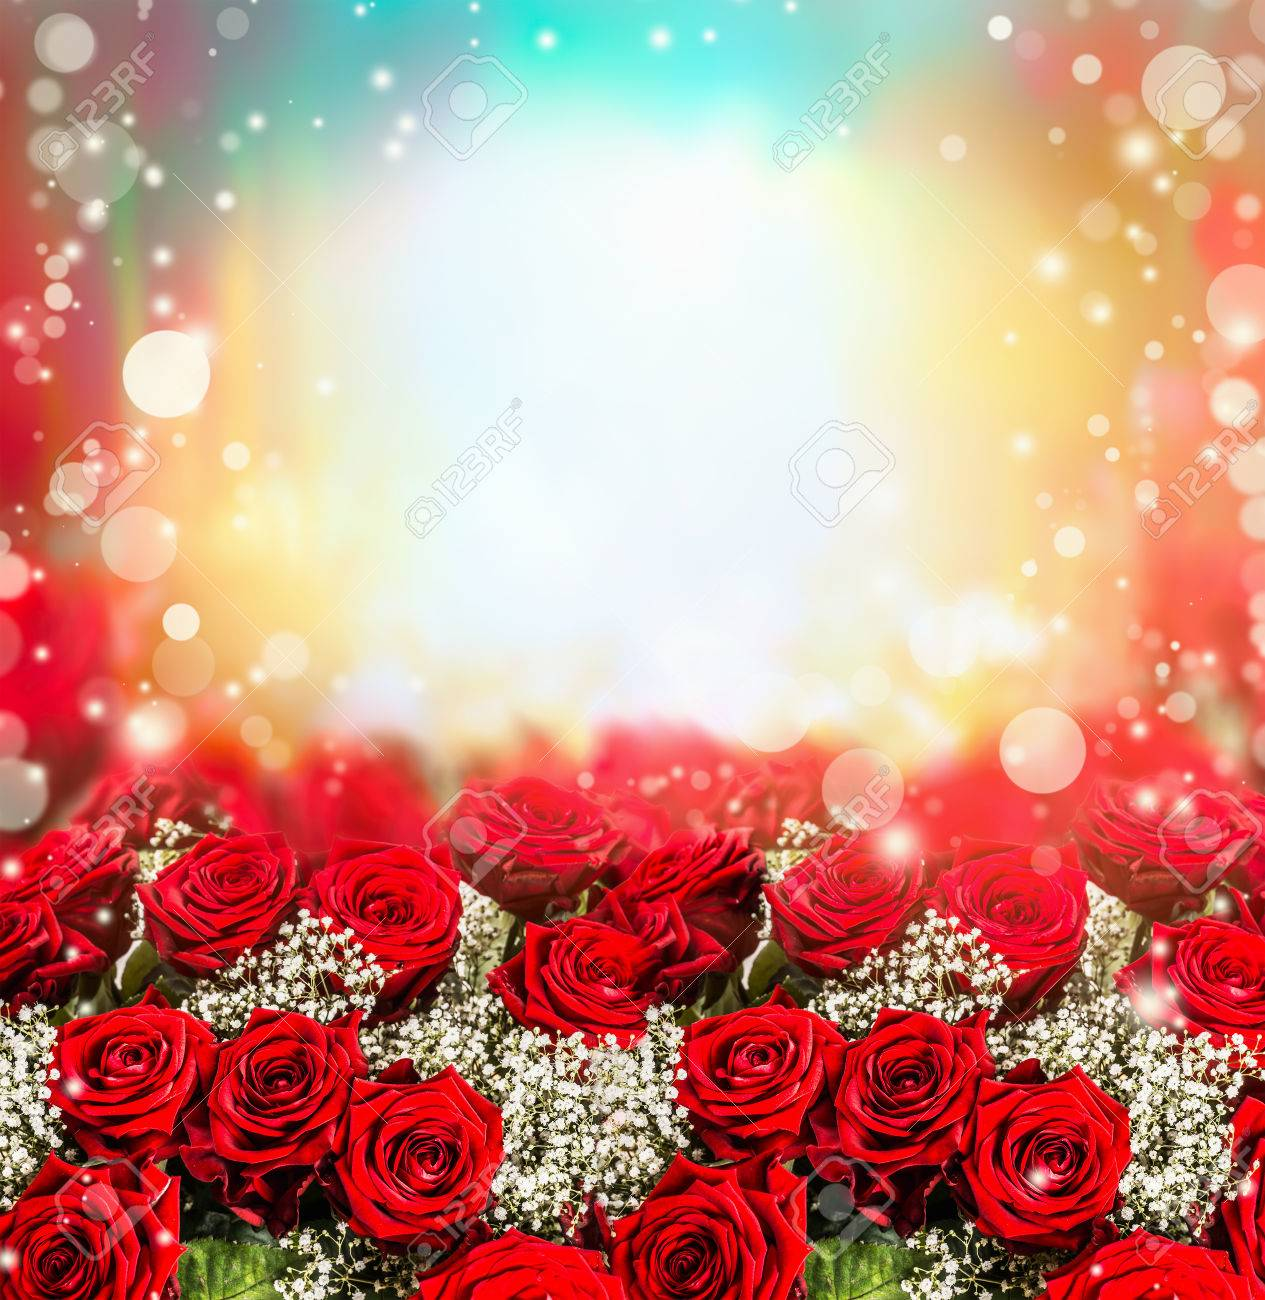 Red Roses Background With Sun Light And Bokeh Garden Floral Border Stock Photo